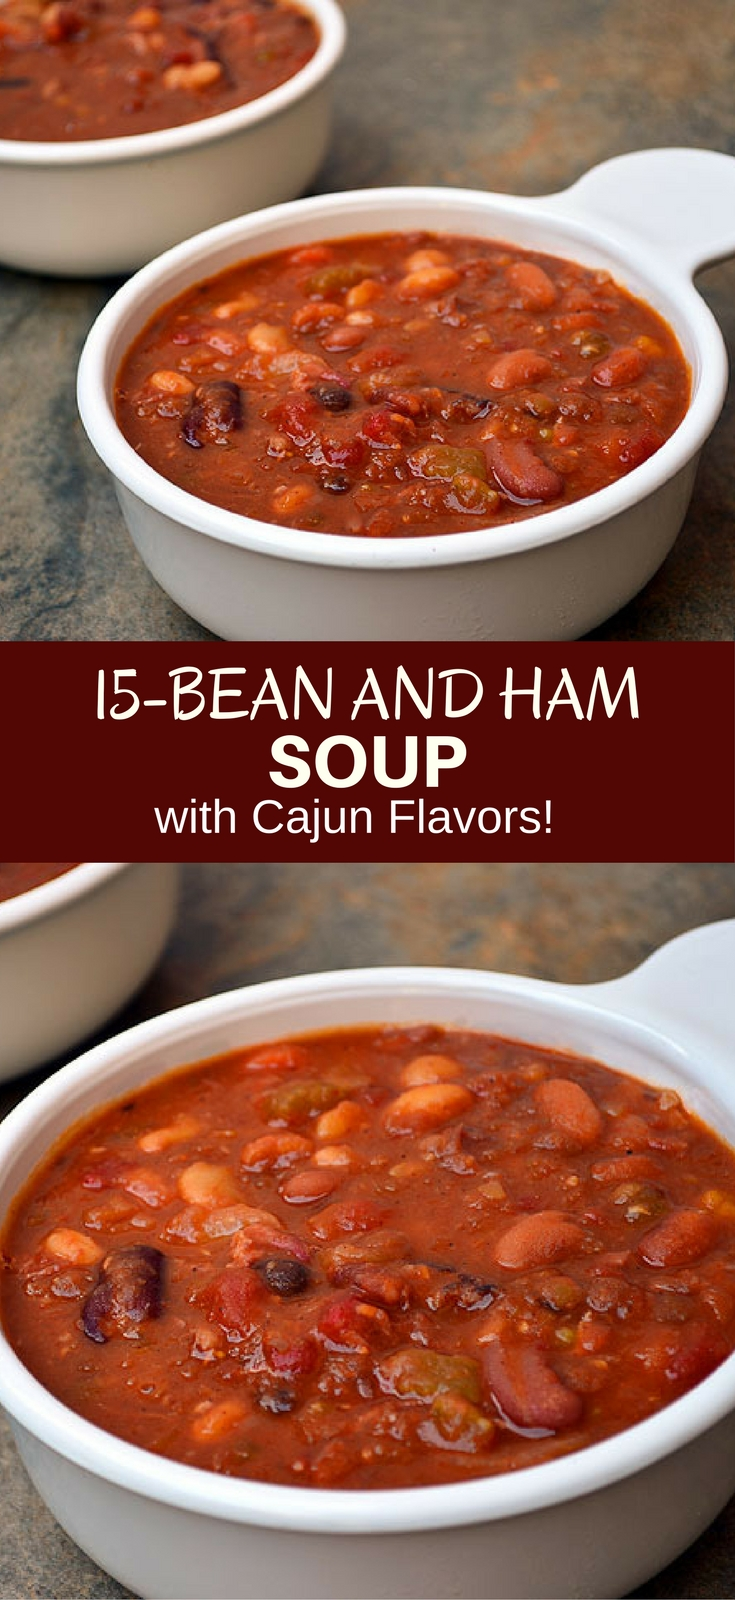 15-Bean Soup with Ham with assorted beans, ham, tomatoes, and Cajun spices for the ultimate cold weather comfort food. It's thick, hearty, delicious and the perfect use for your leftover ham!